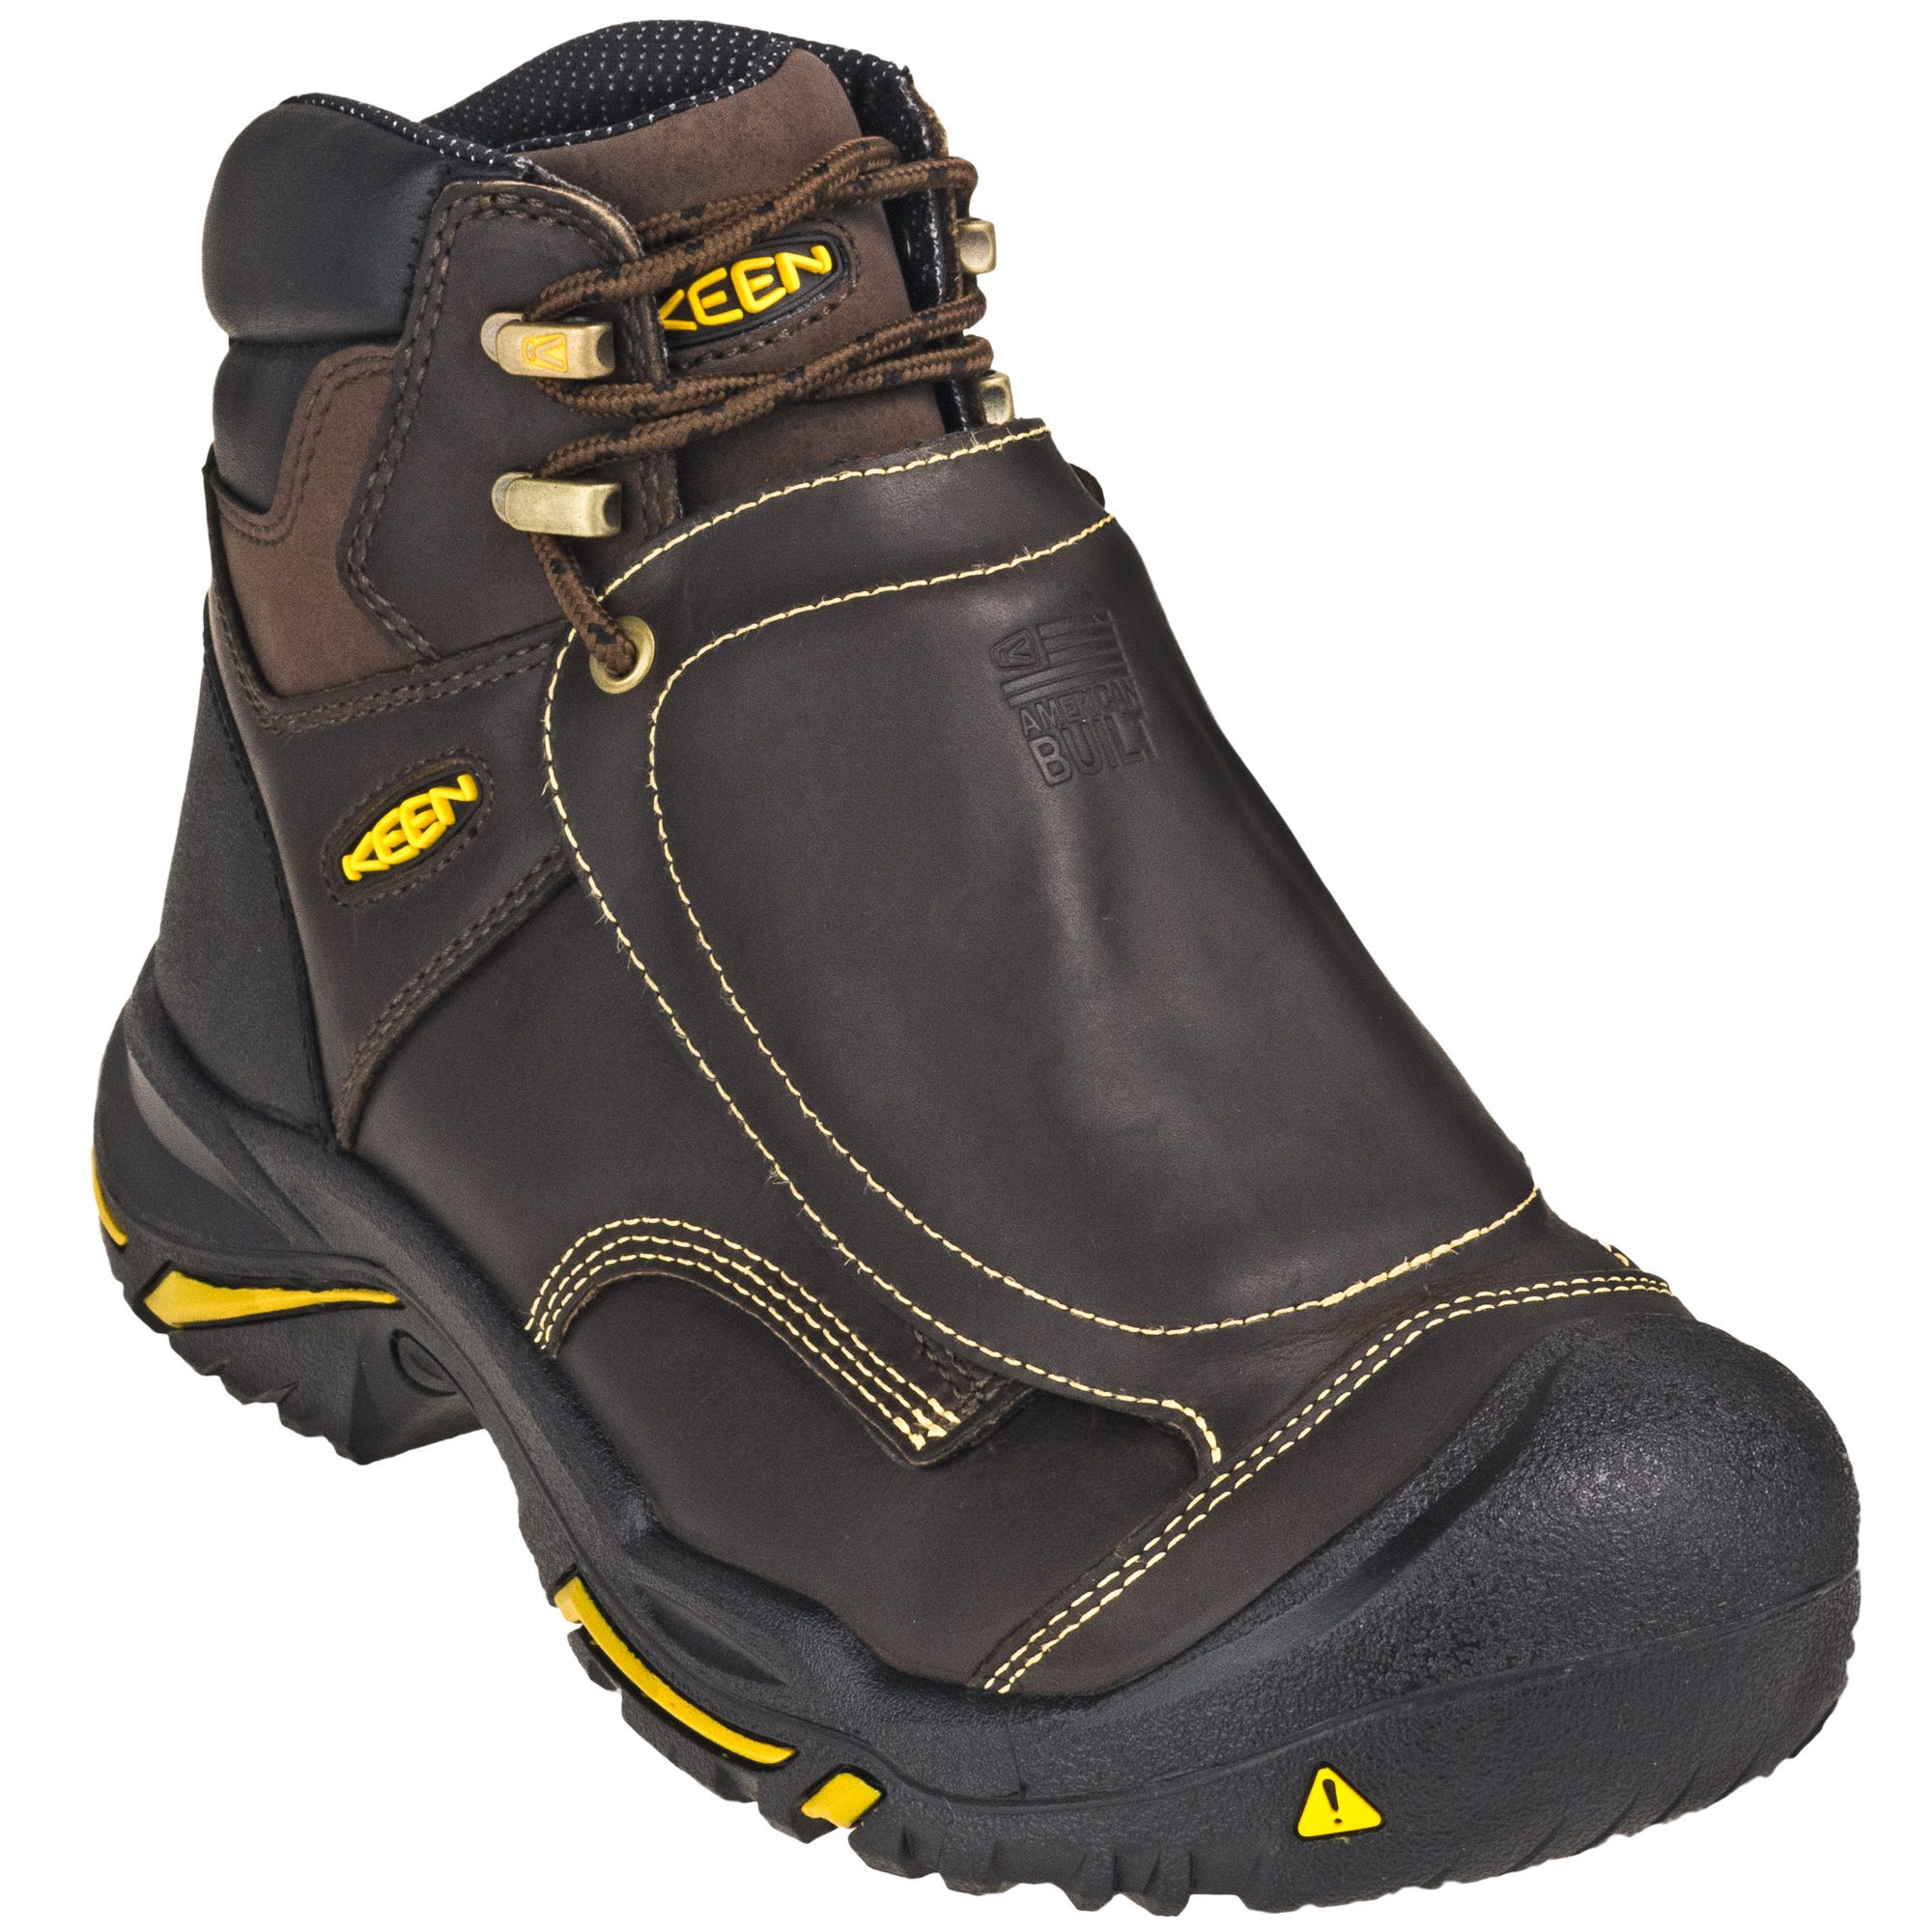 40a151c0ce1 Keen Utility Men's Boots   MenStyle USA